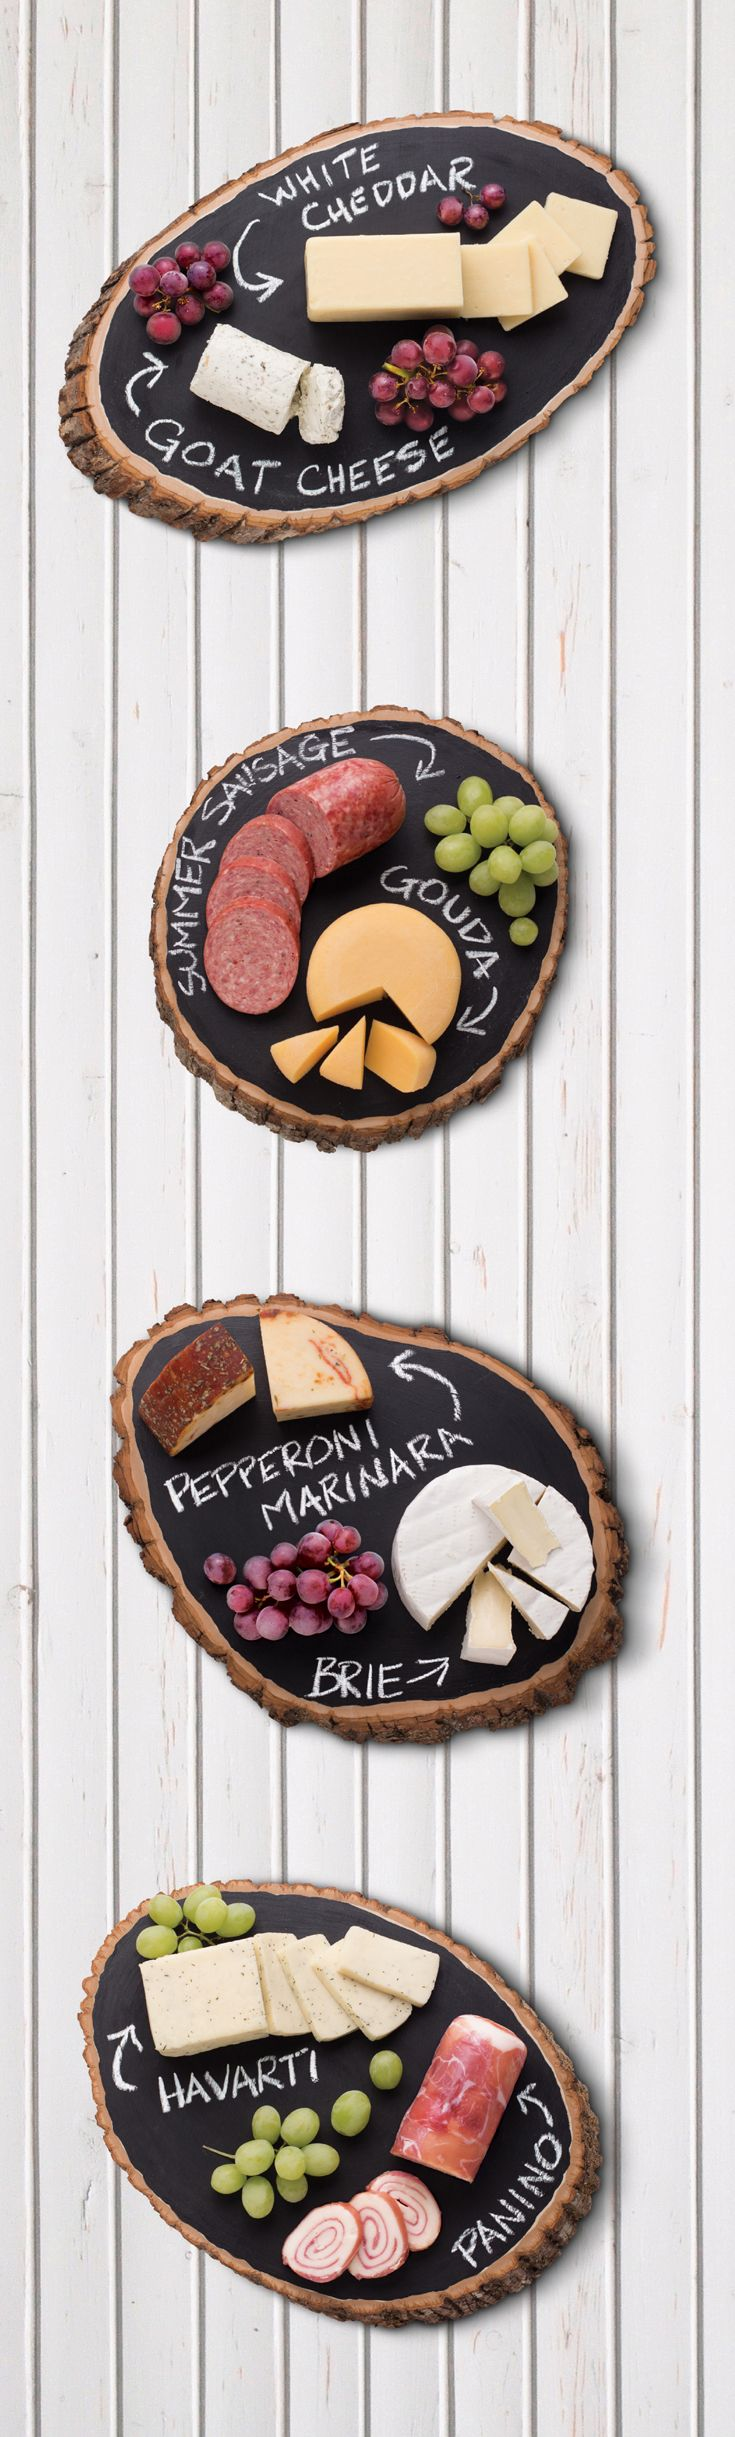 Cheese boards with a summer spin - try cuts of natural materials like wood for a unique, outdoorsy presentation.